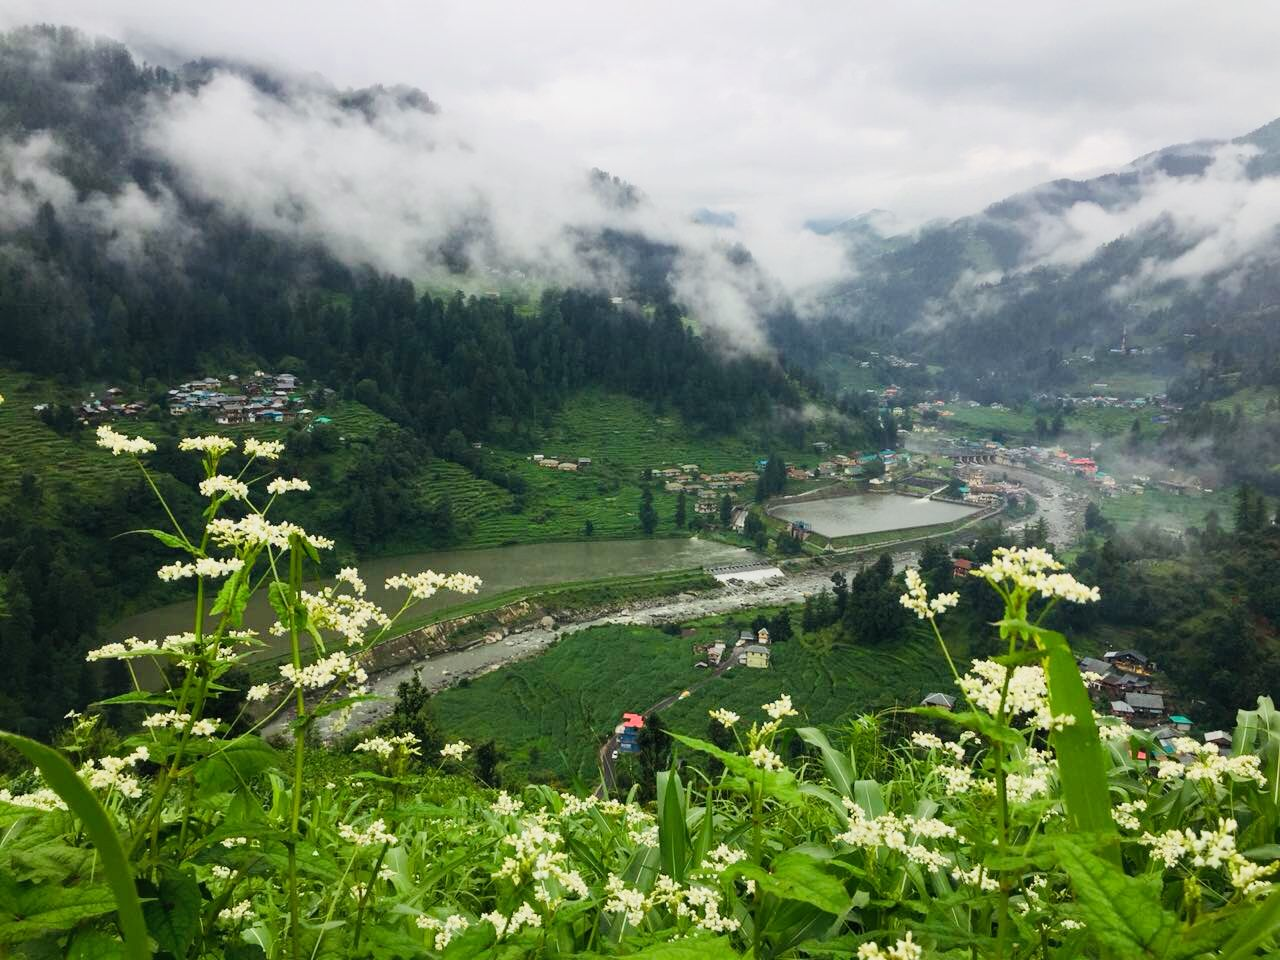 Photo of Barot By Shalini Thakur